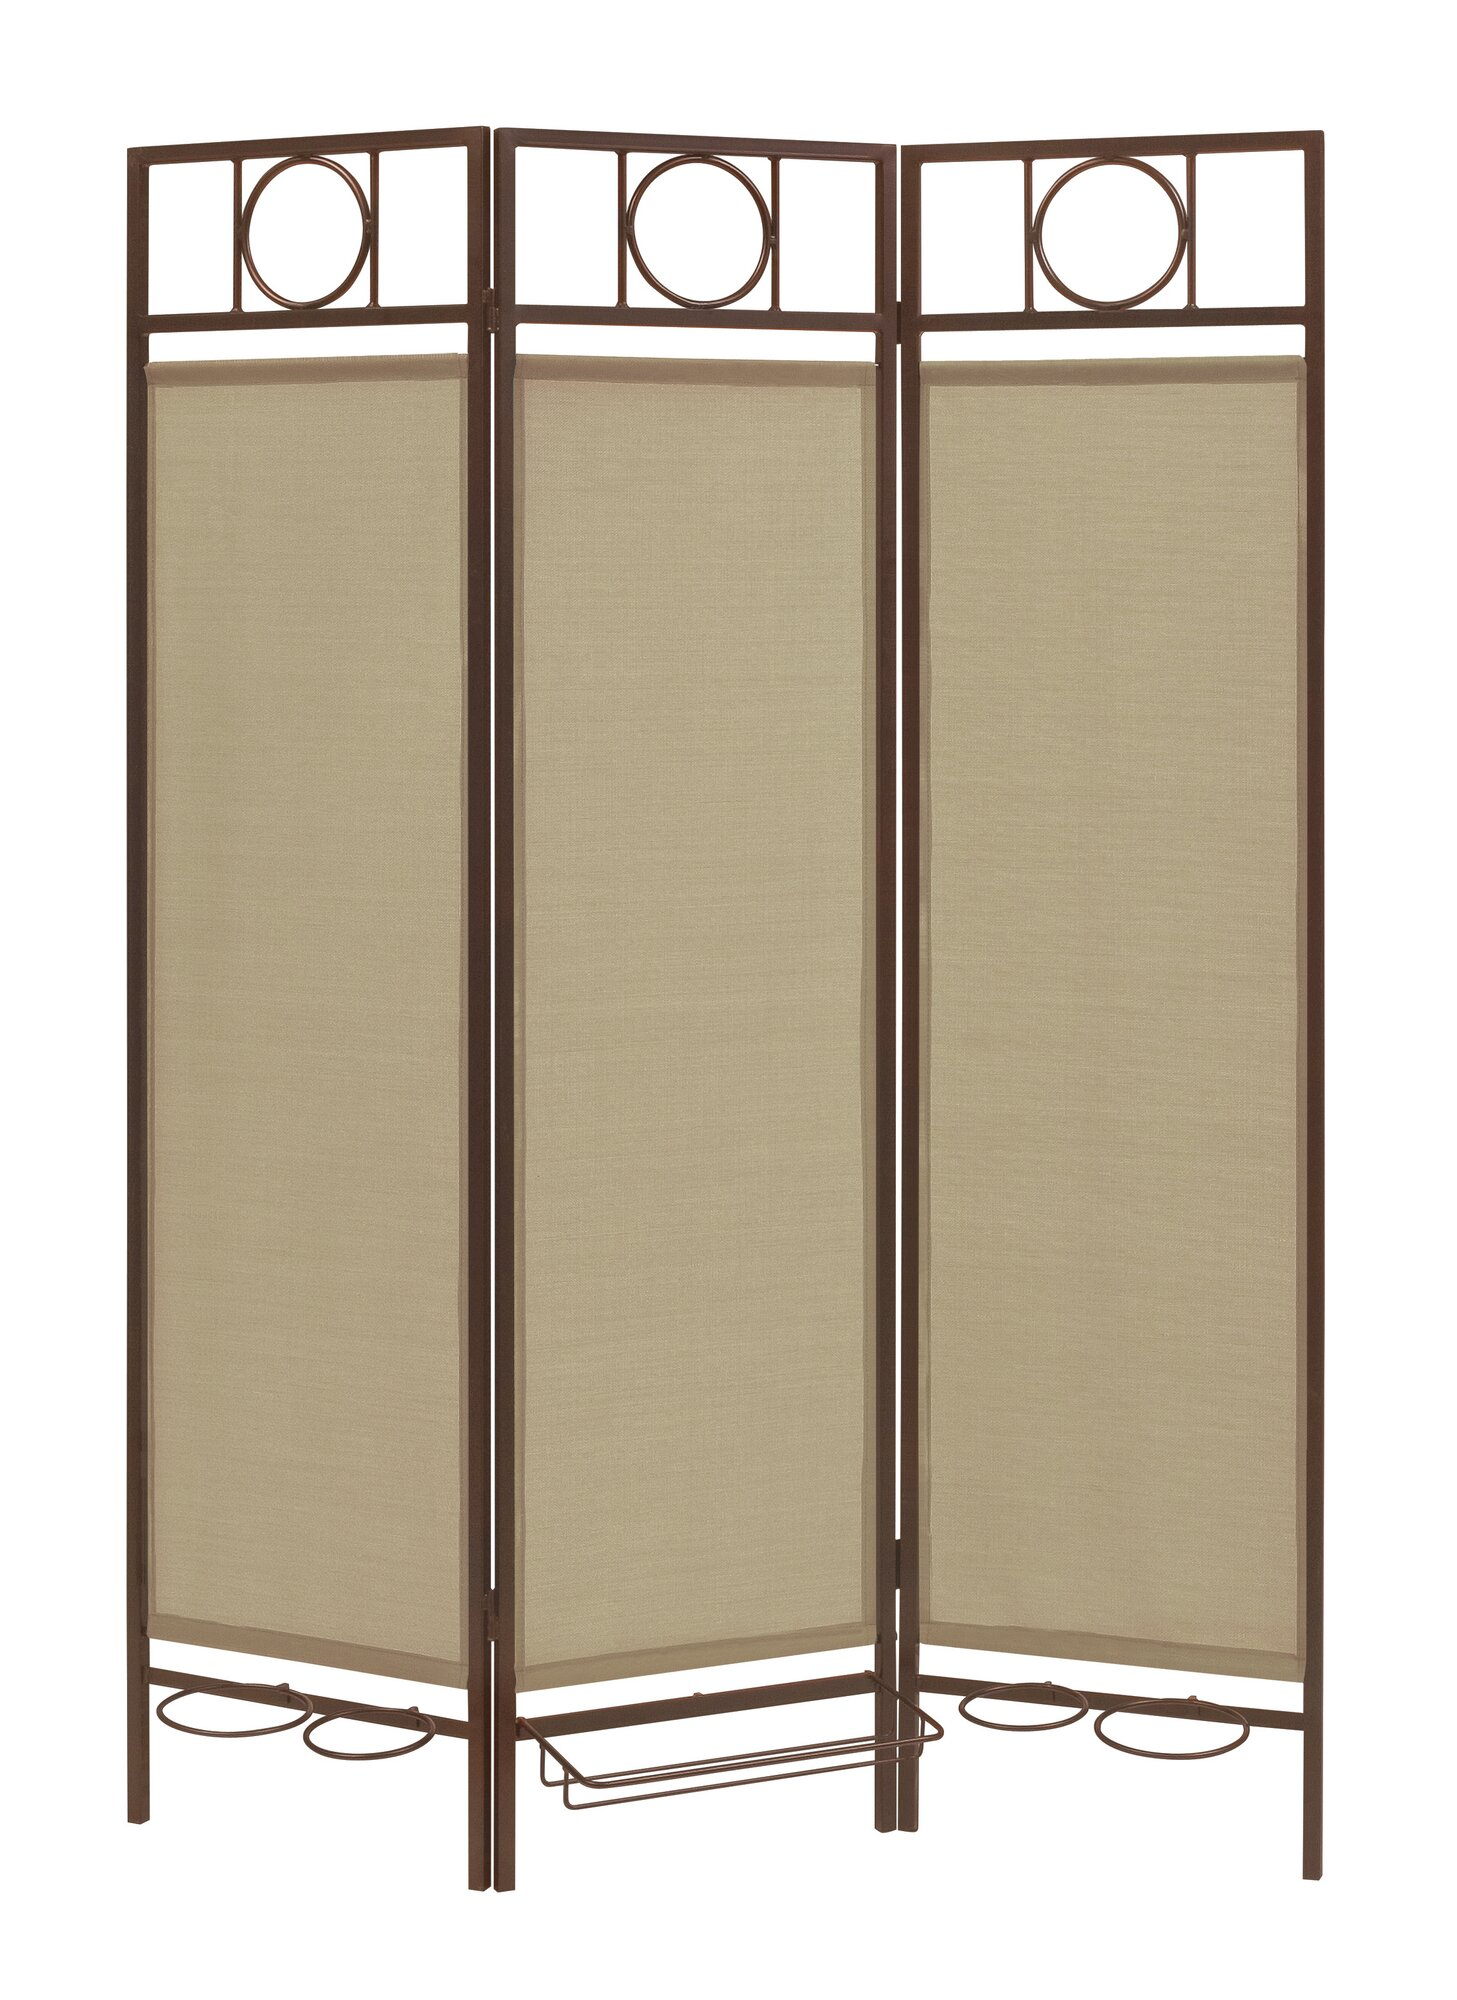 idm worldwide x 54 privacy screen in a box 3 panel room divider ebay. Black Bedroom Furniture Sets. Home Design Ideas